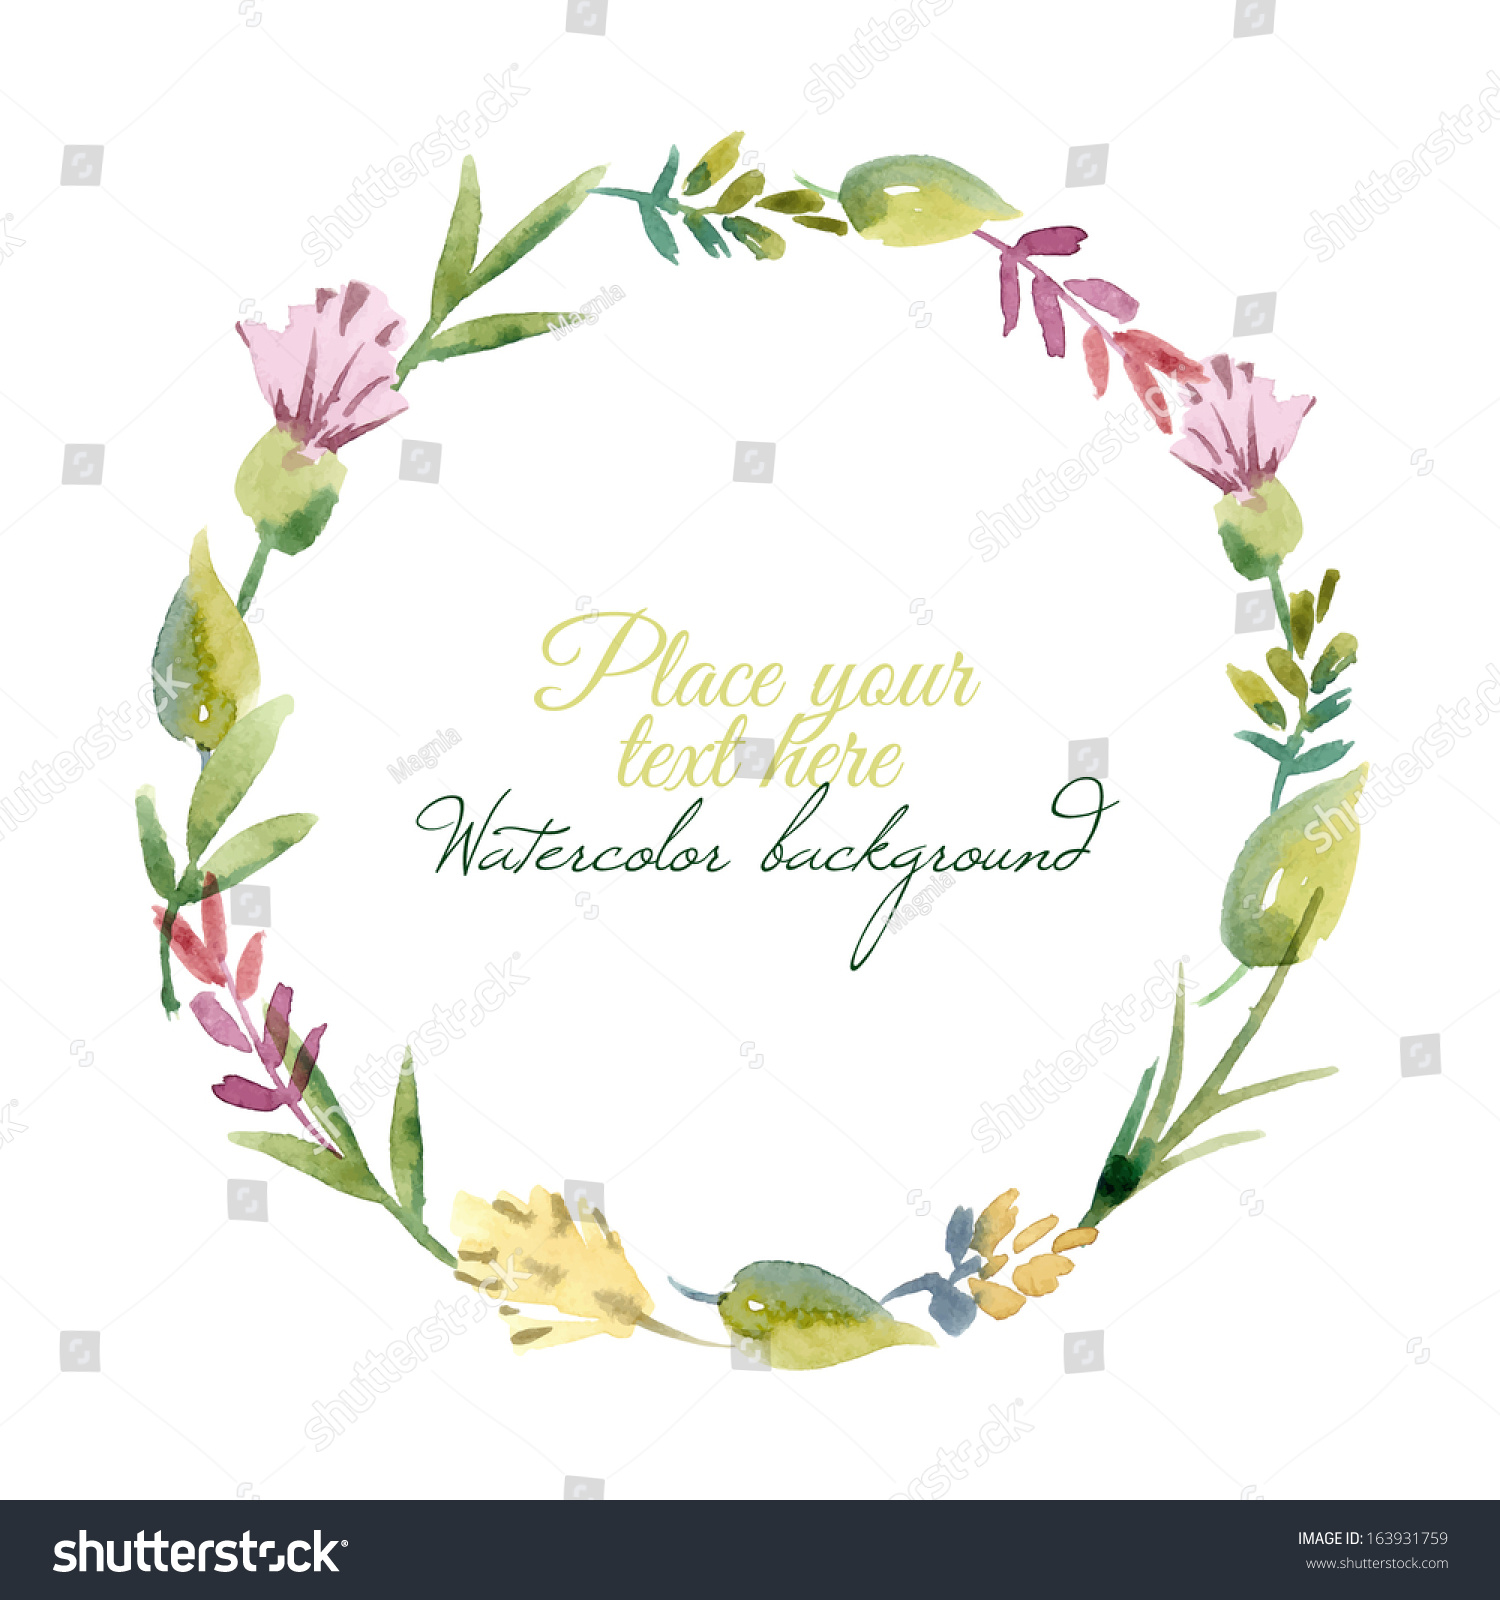 Watercolor Floral Frame Vector Illustration Stock Vector ...